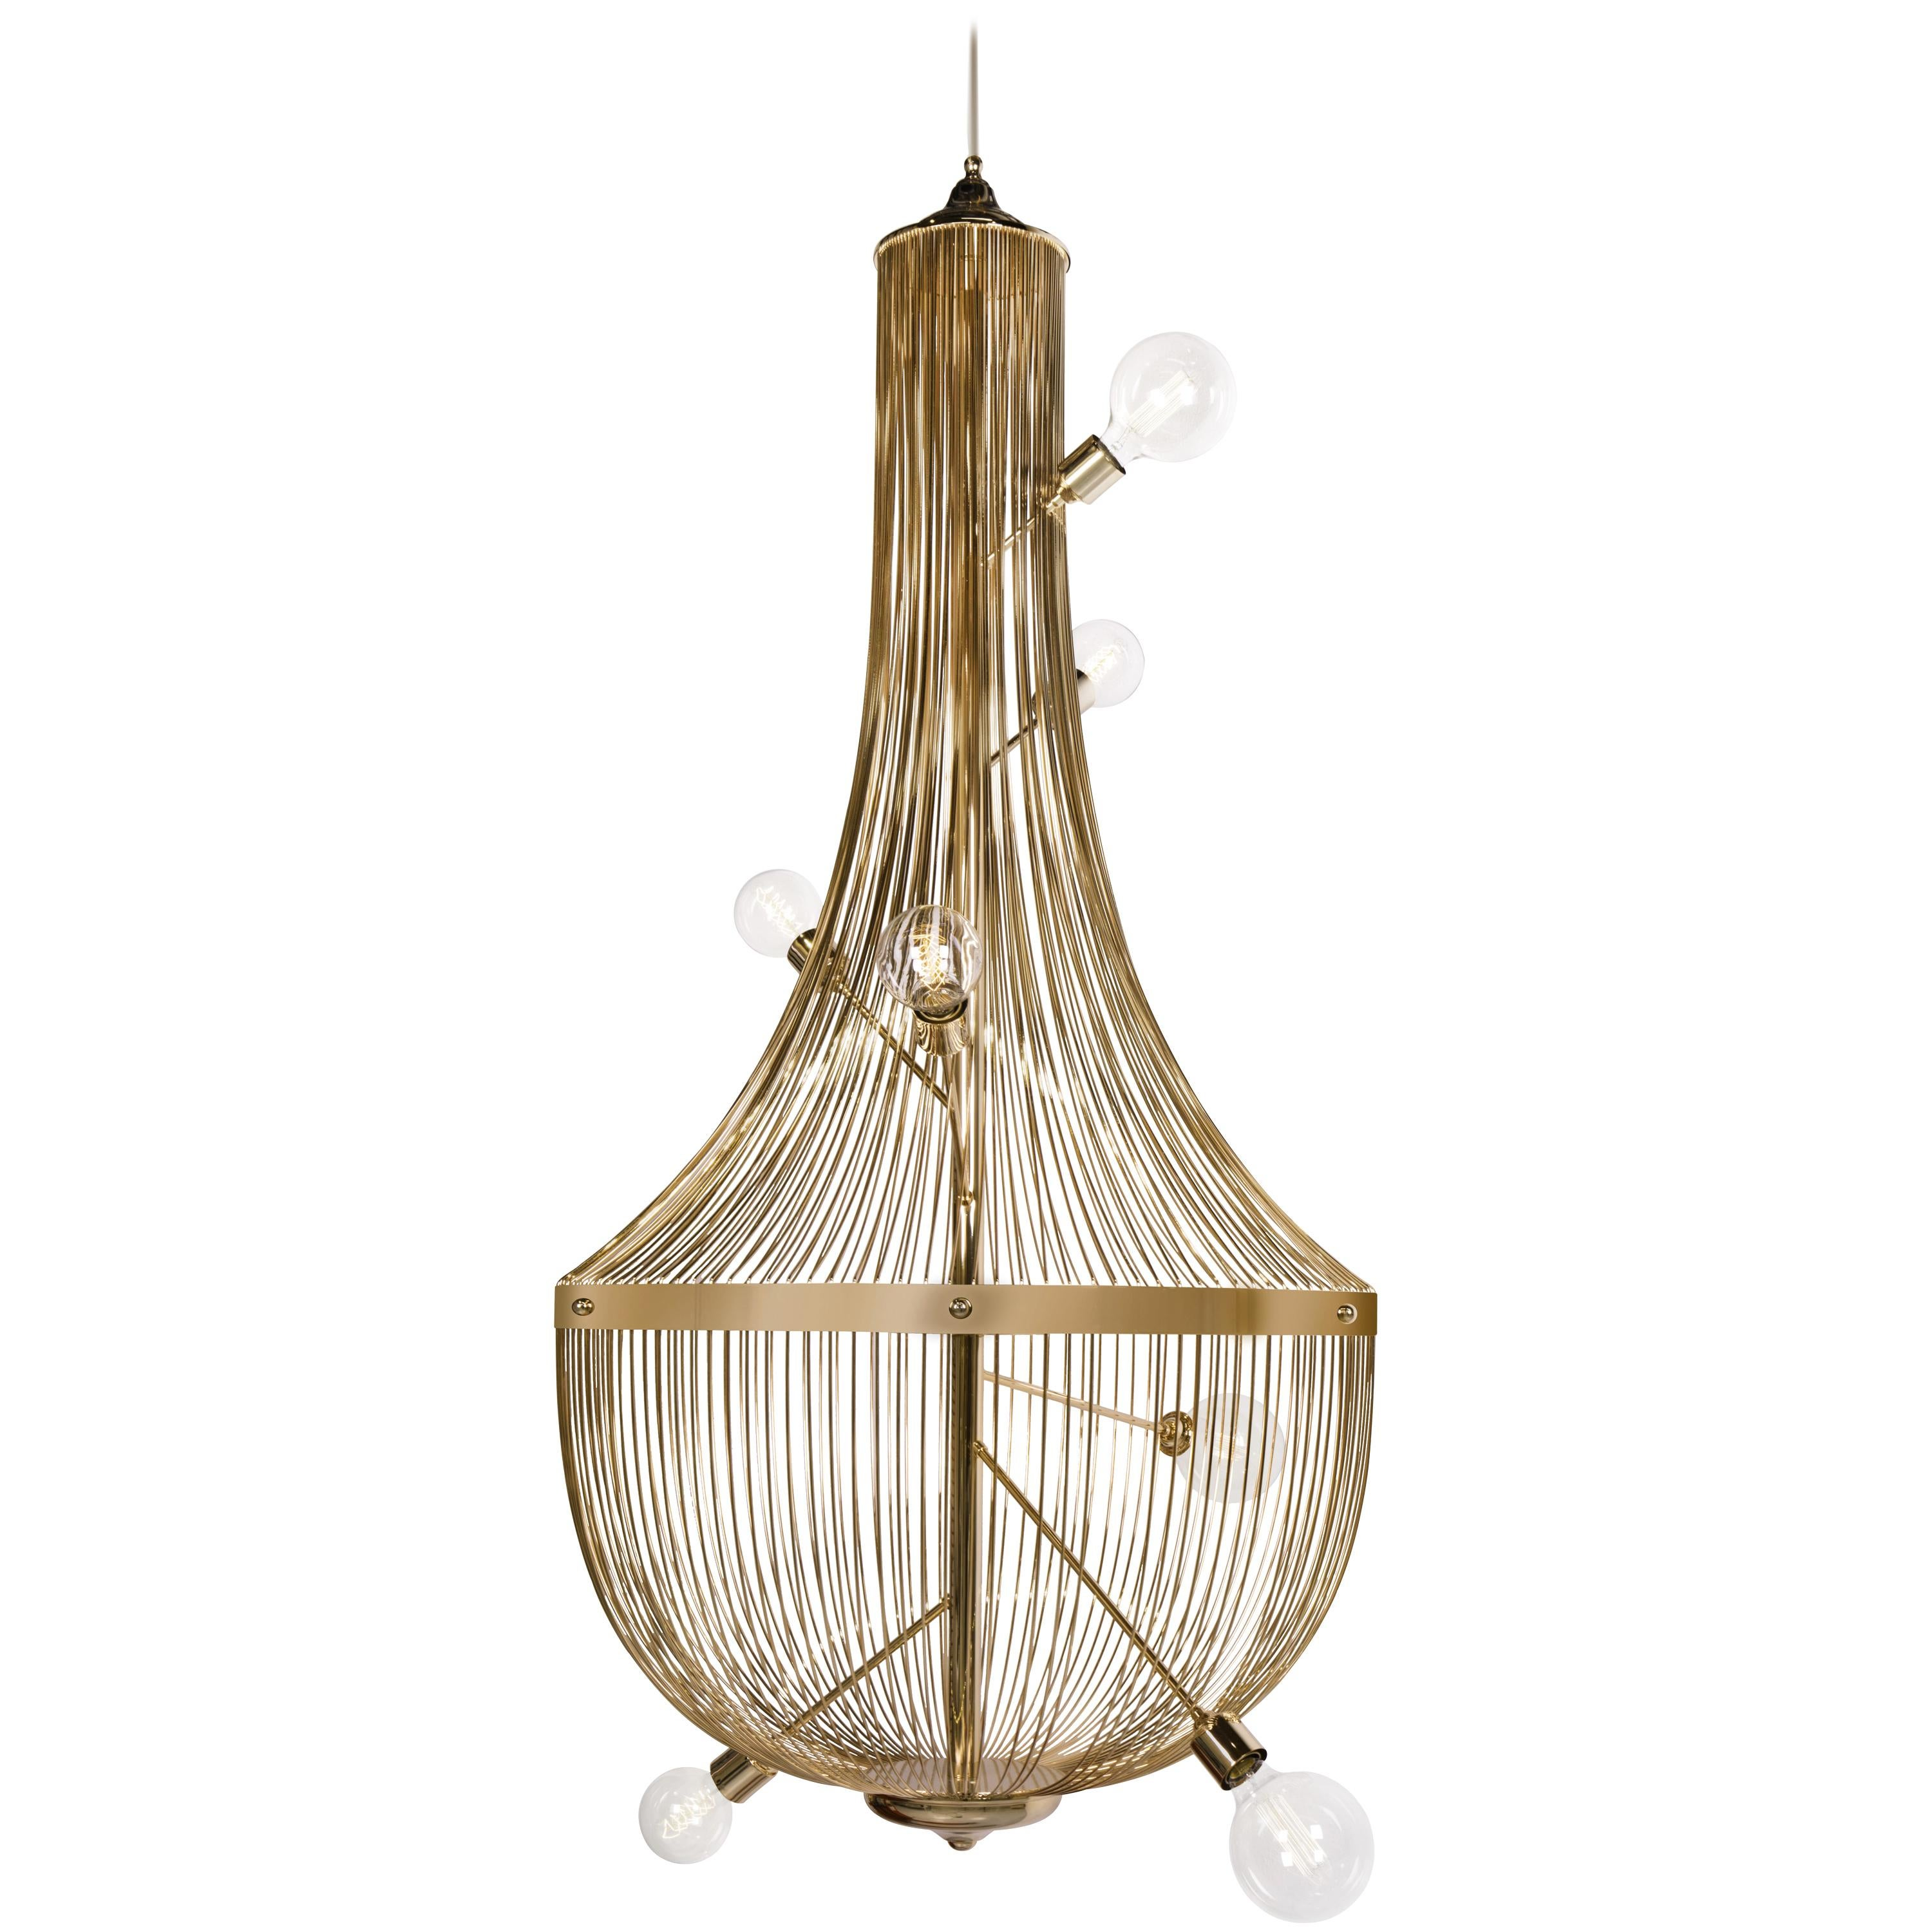 L' Chandelier Suspension Light in Gold-Plated Brass